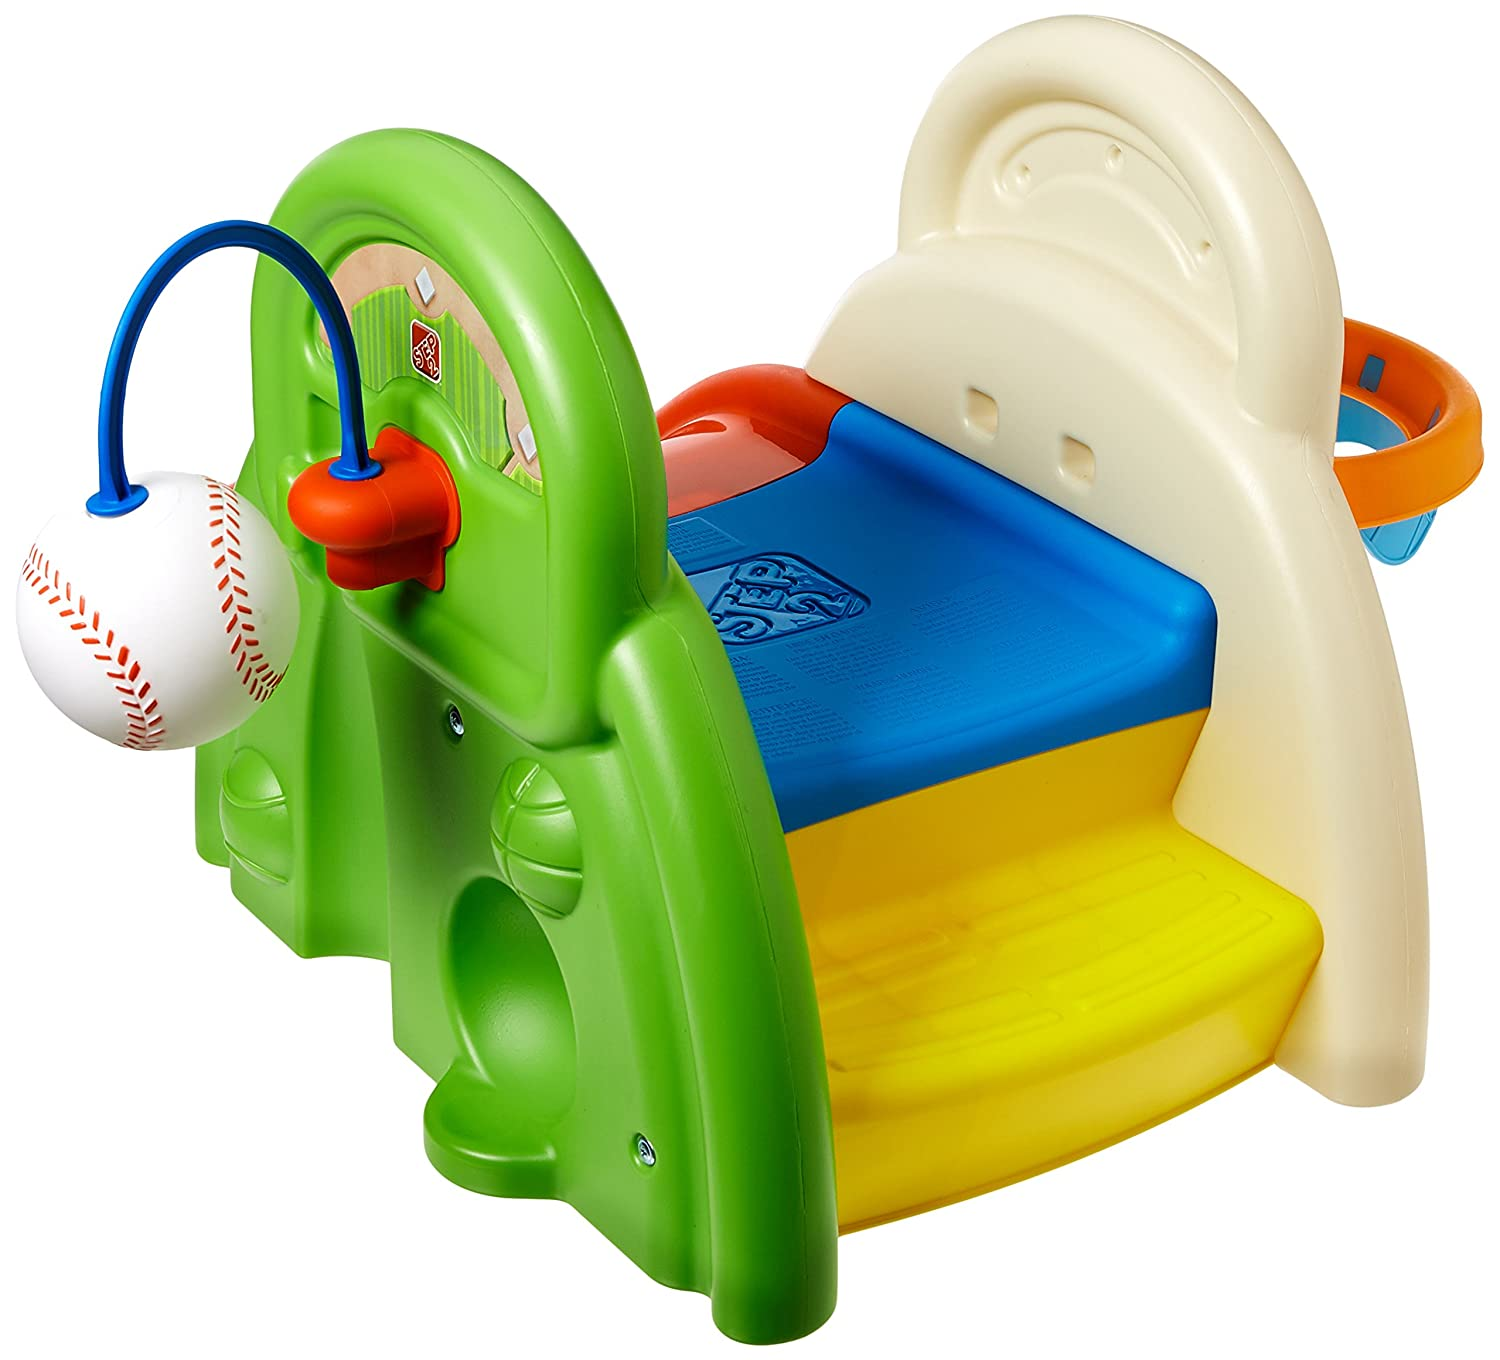 Amazon Sportstastic Activity Center Toys & Games